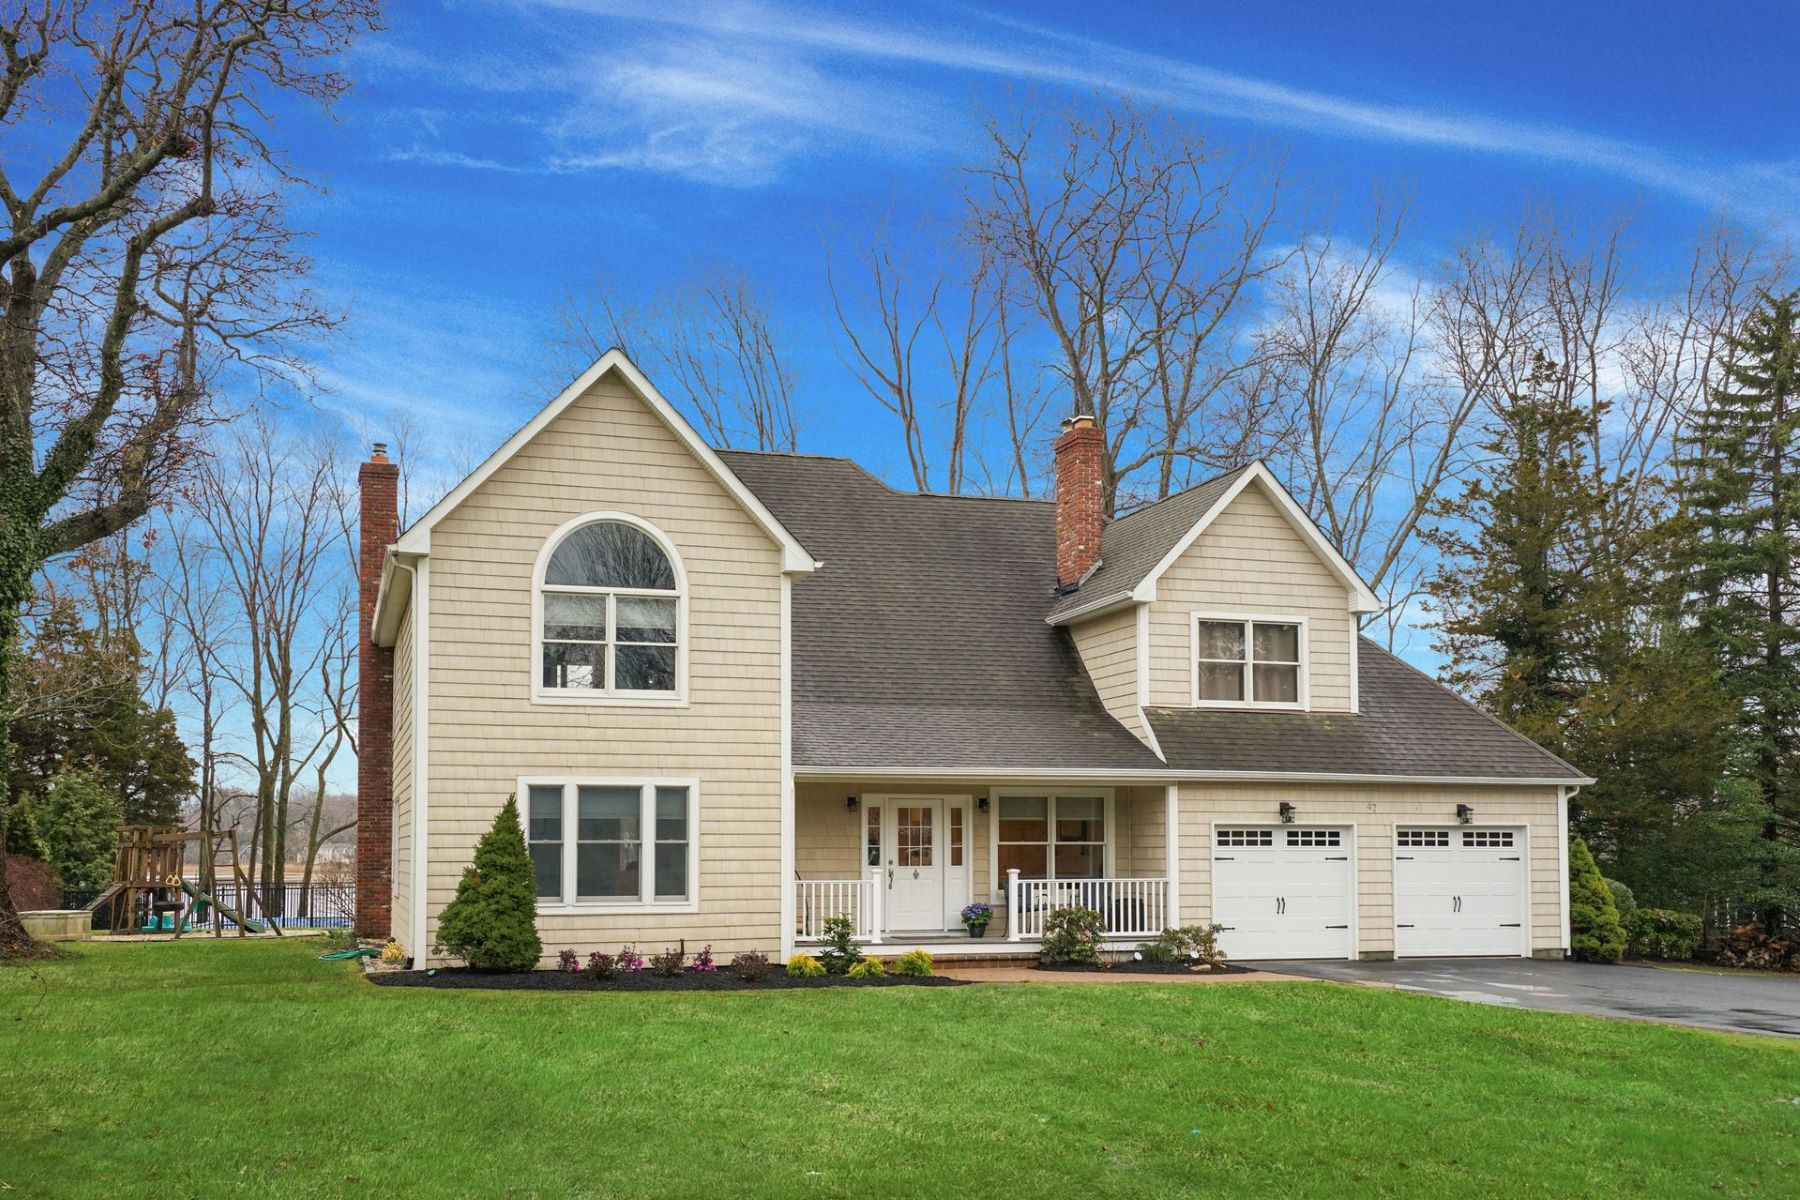 Single Family Homes for Active at Setauket 47 Dyke Rd Setauket, New York 11733 United States